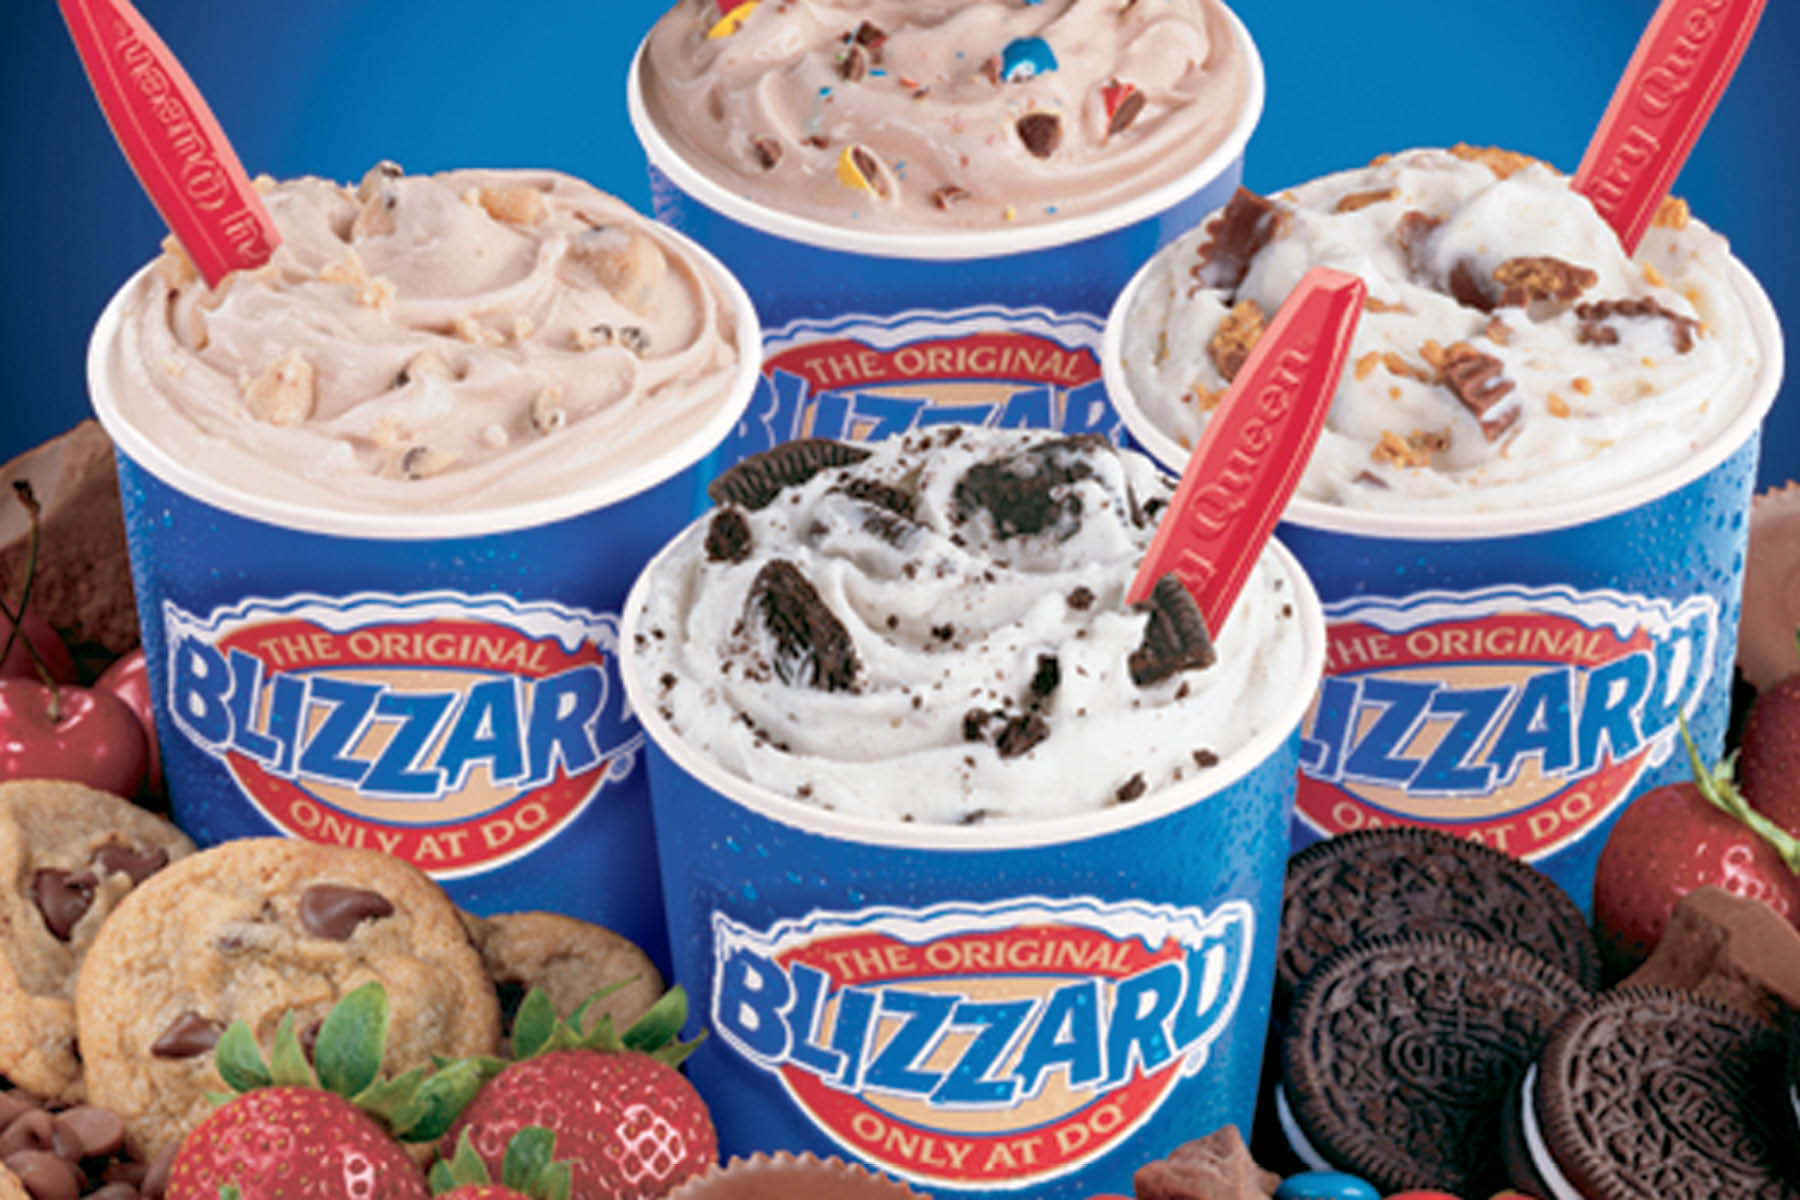 Ice Cream, Blizzards, Milkshakes, Smoothies, Soft Serve Ice Cream